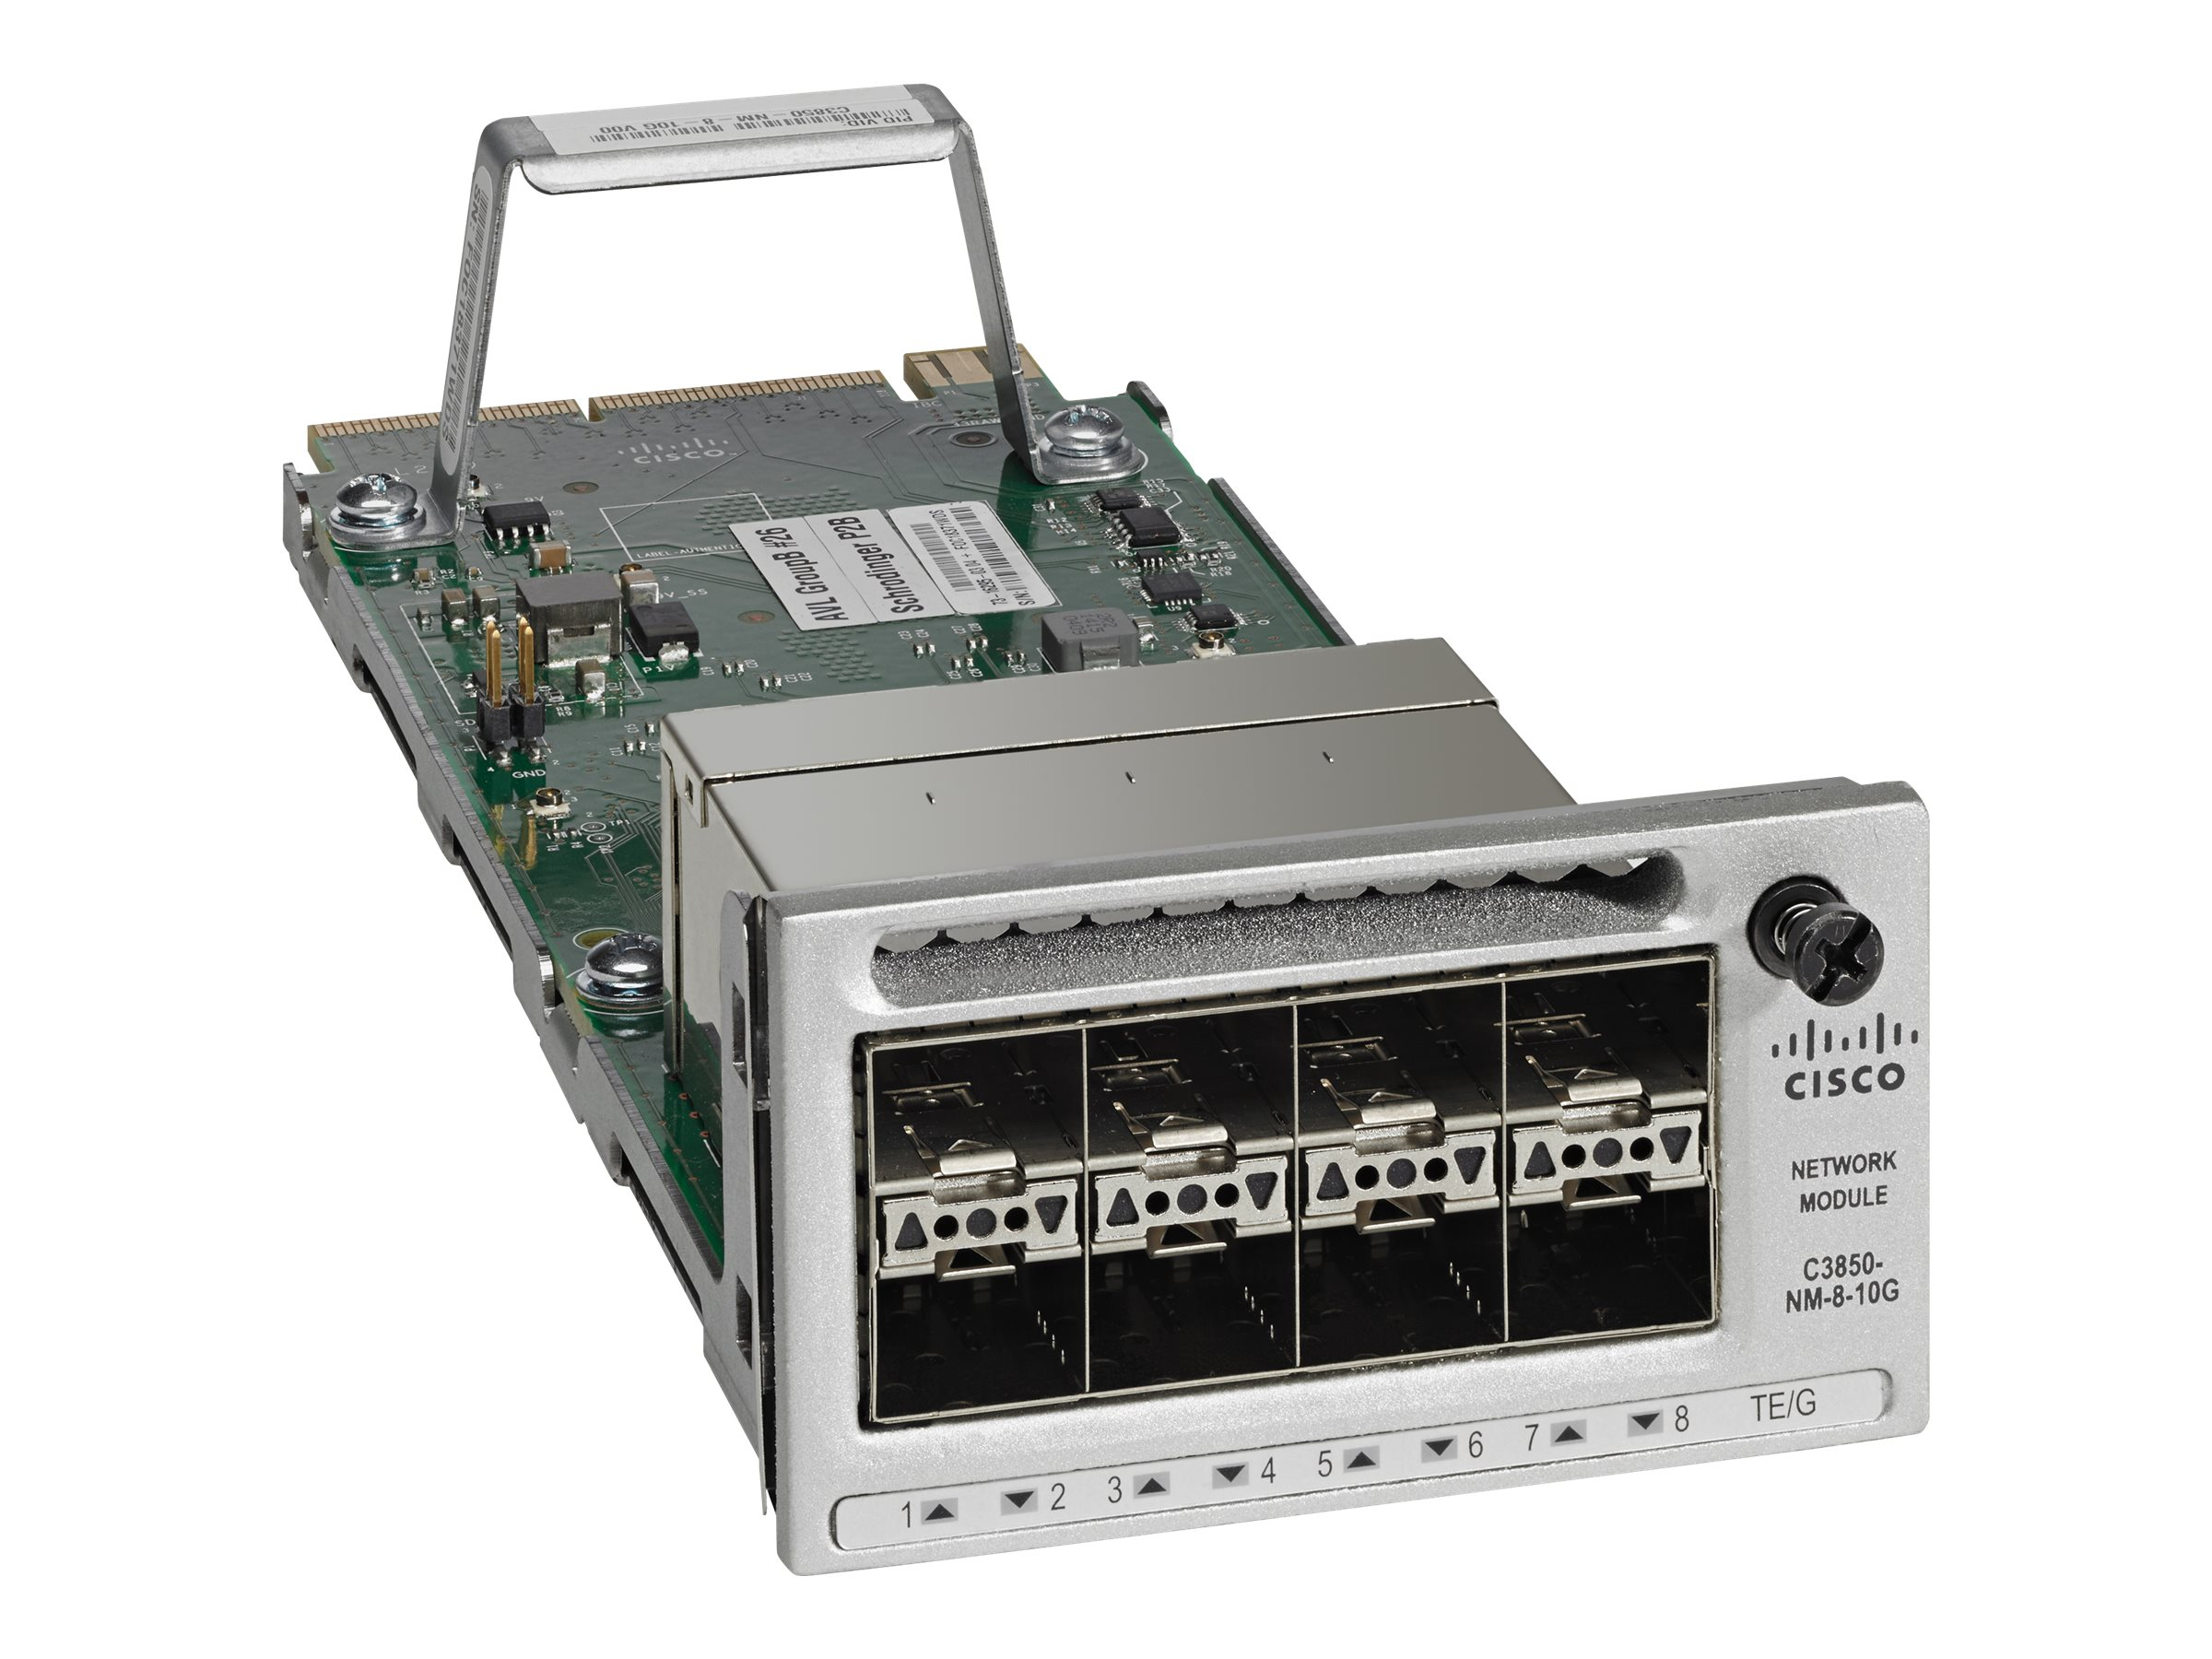 Cisco Catalyst 3850 8-Port 10GE Network Module